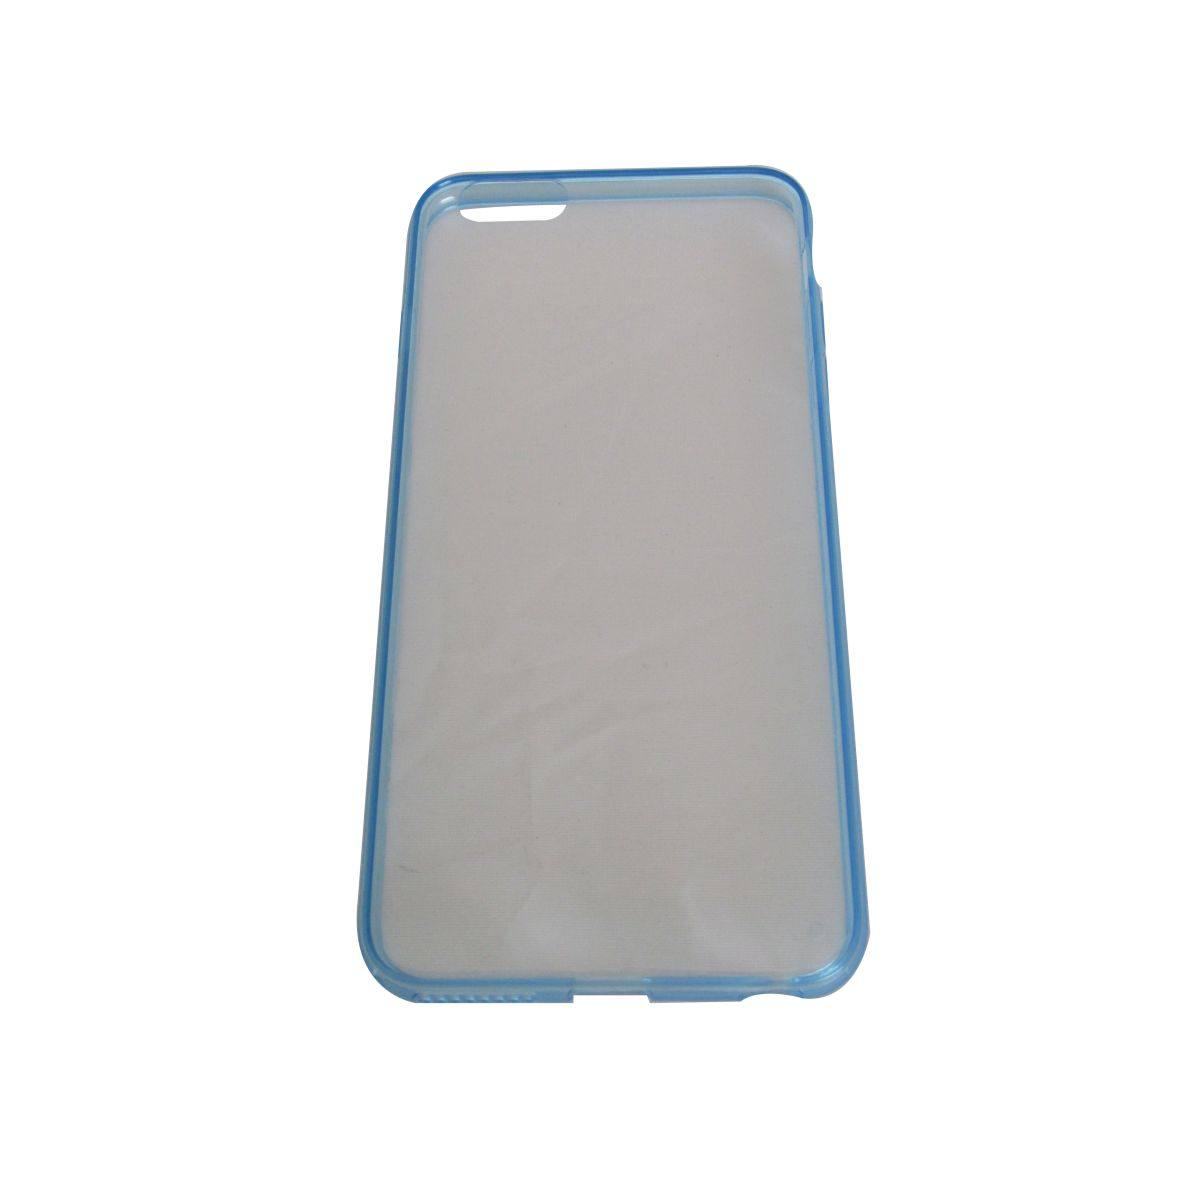 Capa Bumper Exclusiva Iphone 6 Plus Azul